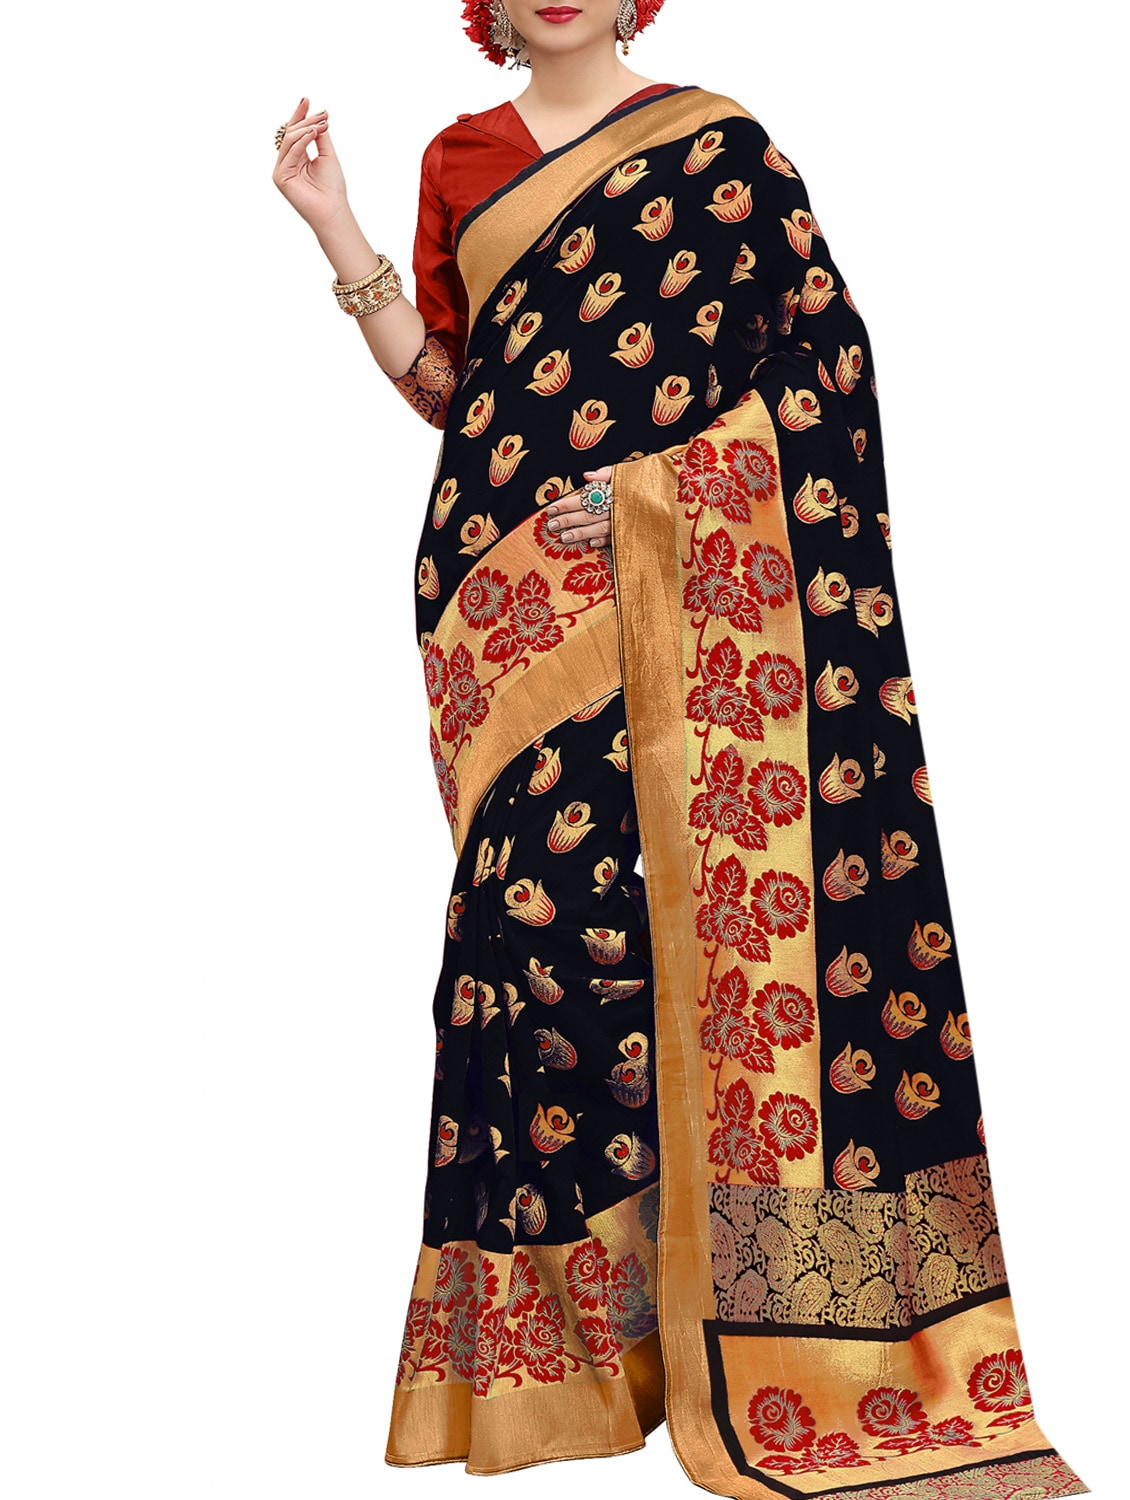 a5f5578994891 Buy Black Banarasi Silk Saree With Blouse for Women from Genius Creation  for ₹2198 at 62% off